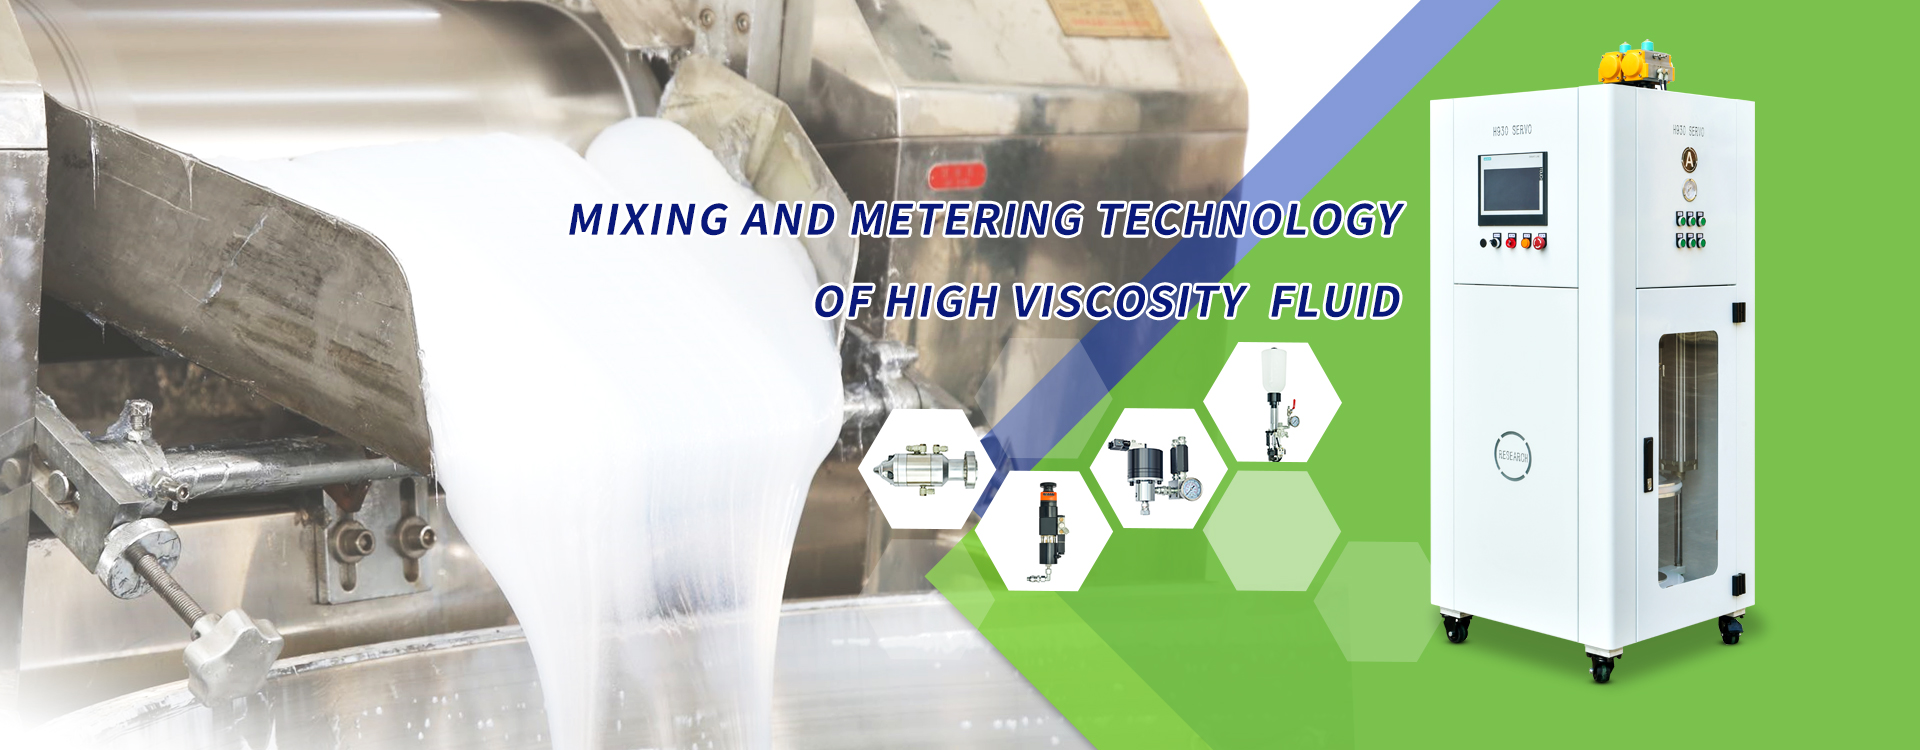 MIXING AND METERING TECHNOLOGY